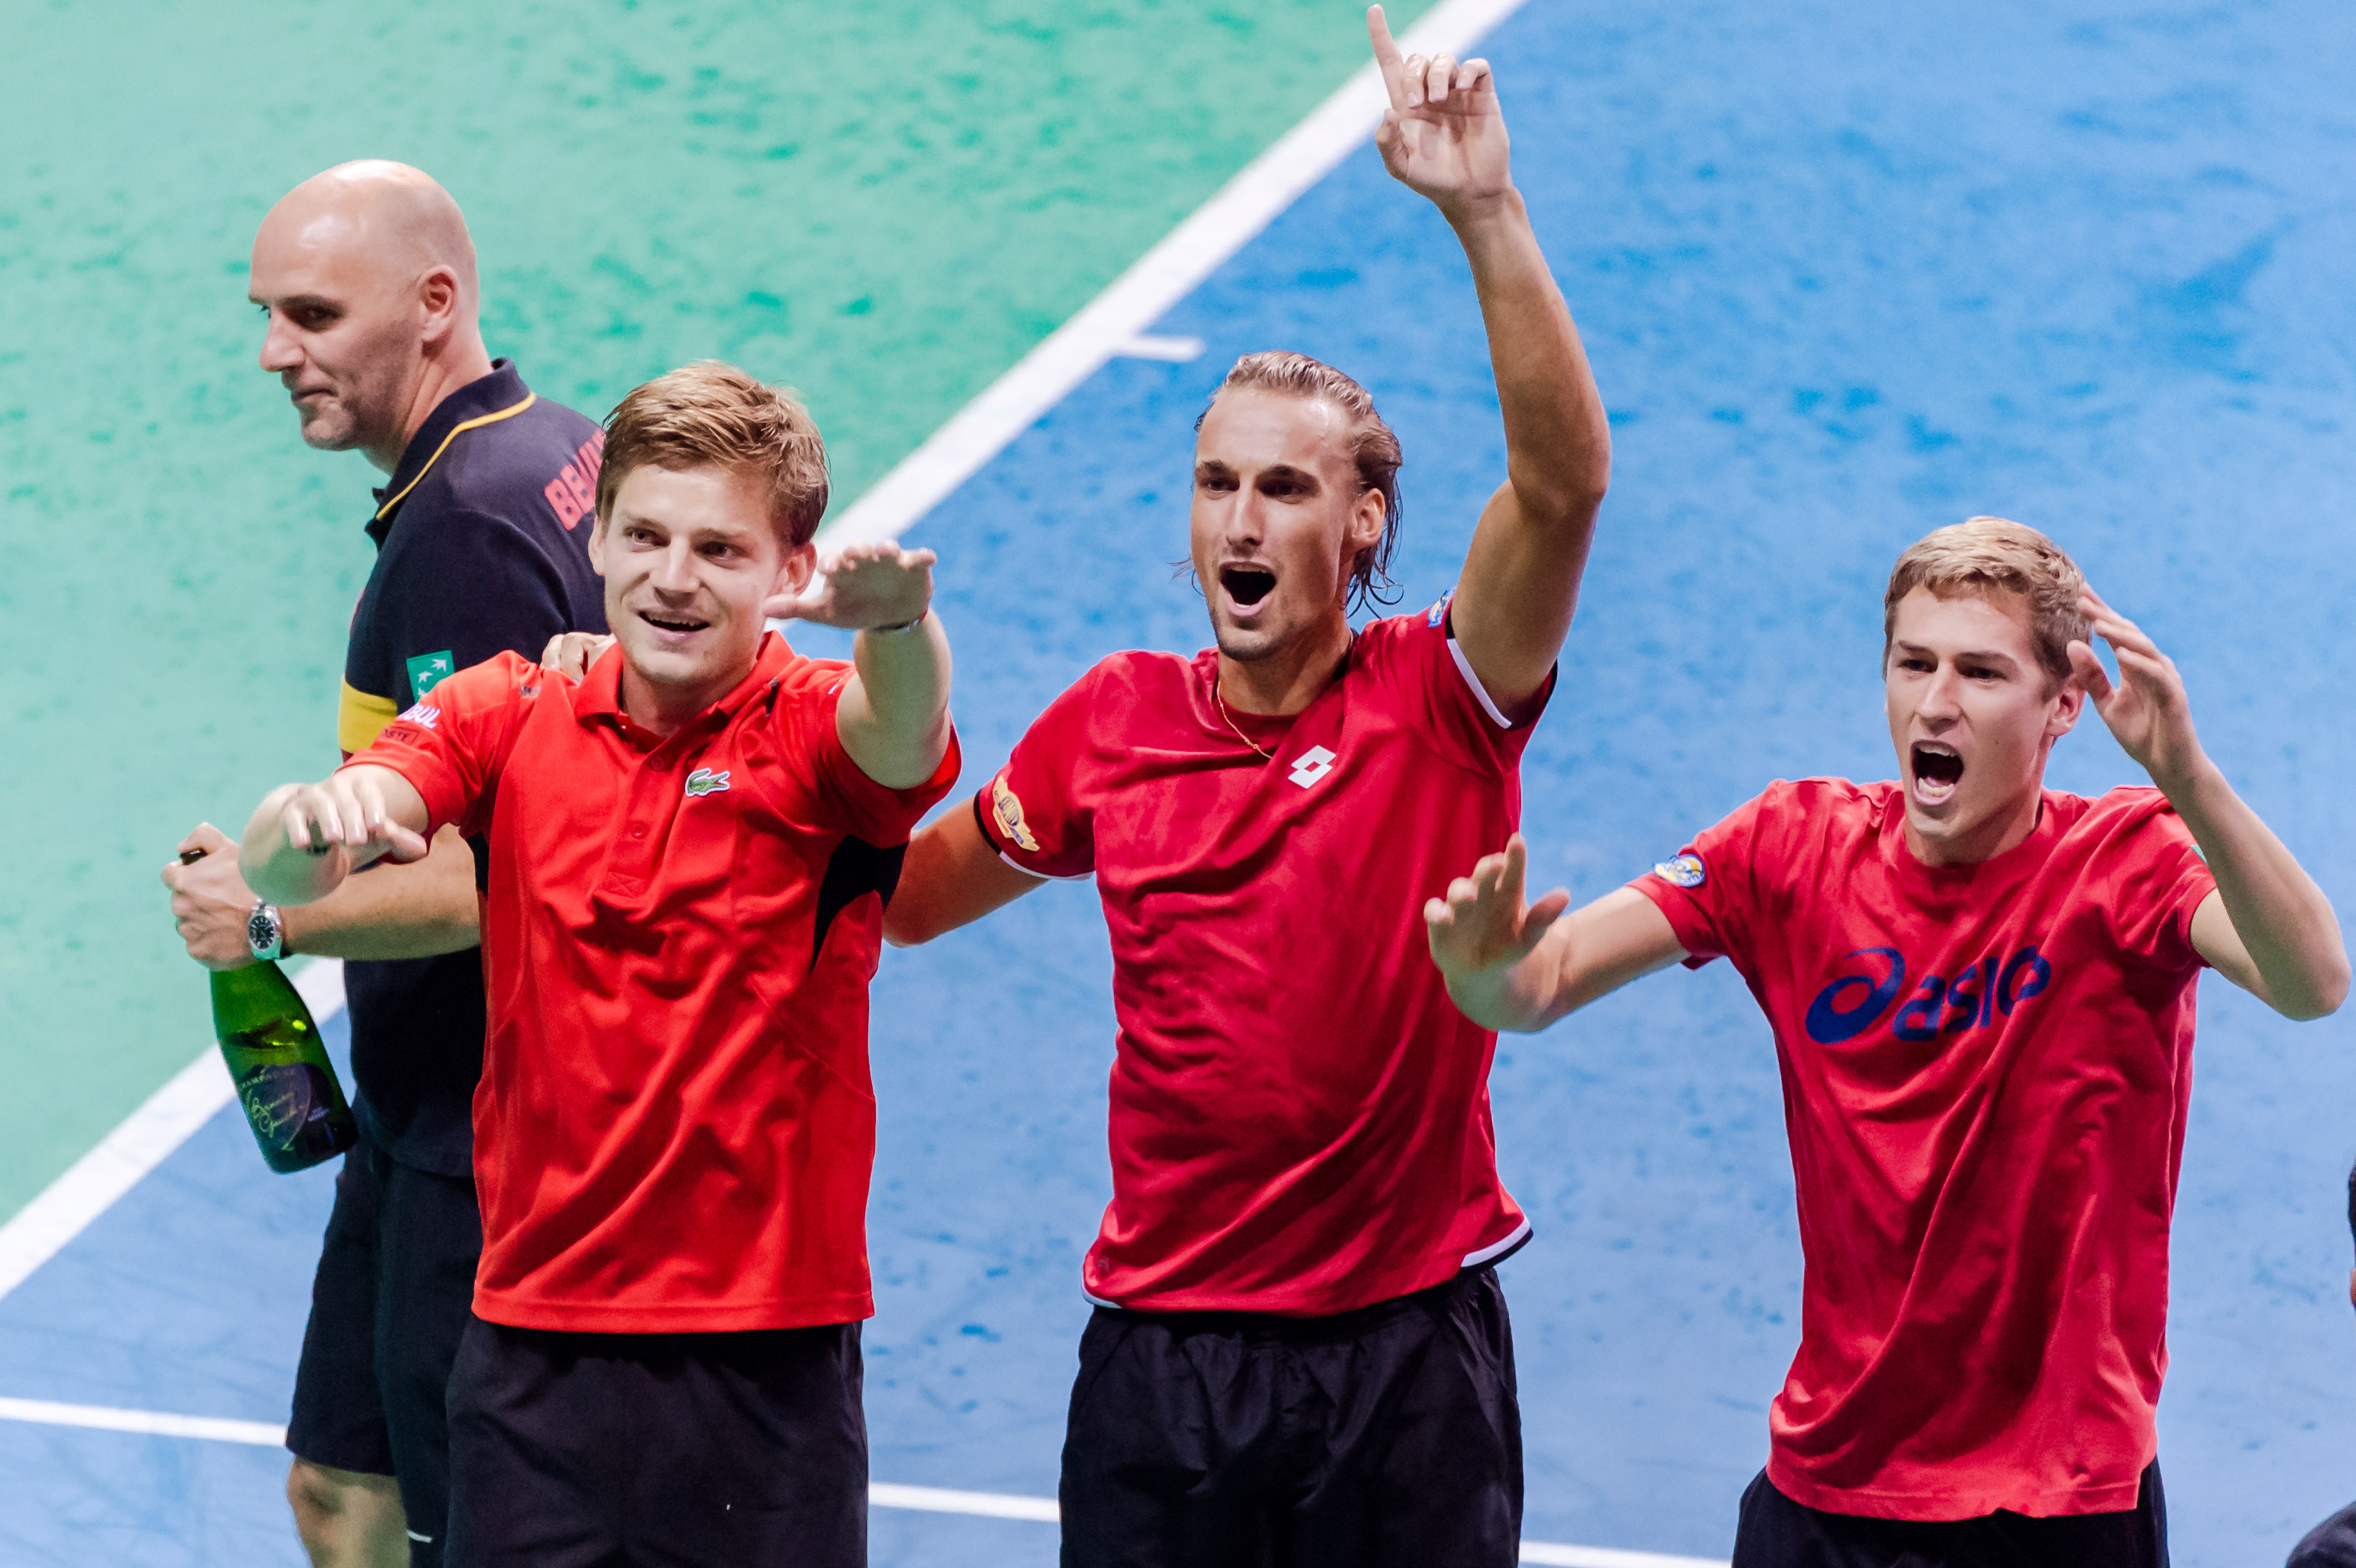 Belgian Davis Cup team captain Johan Van Herck, left, and team members David Goffin, second left, Ruben Bemelmans, second right, and Kimmer Coppejans celebrate after winning the Davis Cup World Group semifinals against Argentina in Brussels, Sunday, Sept.